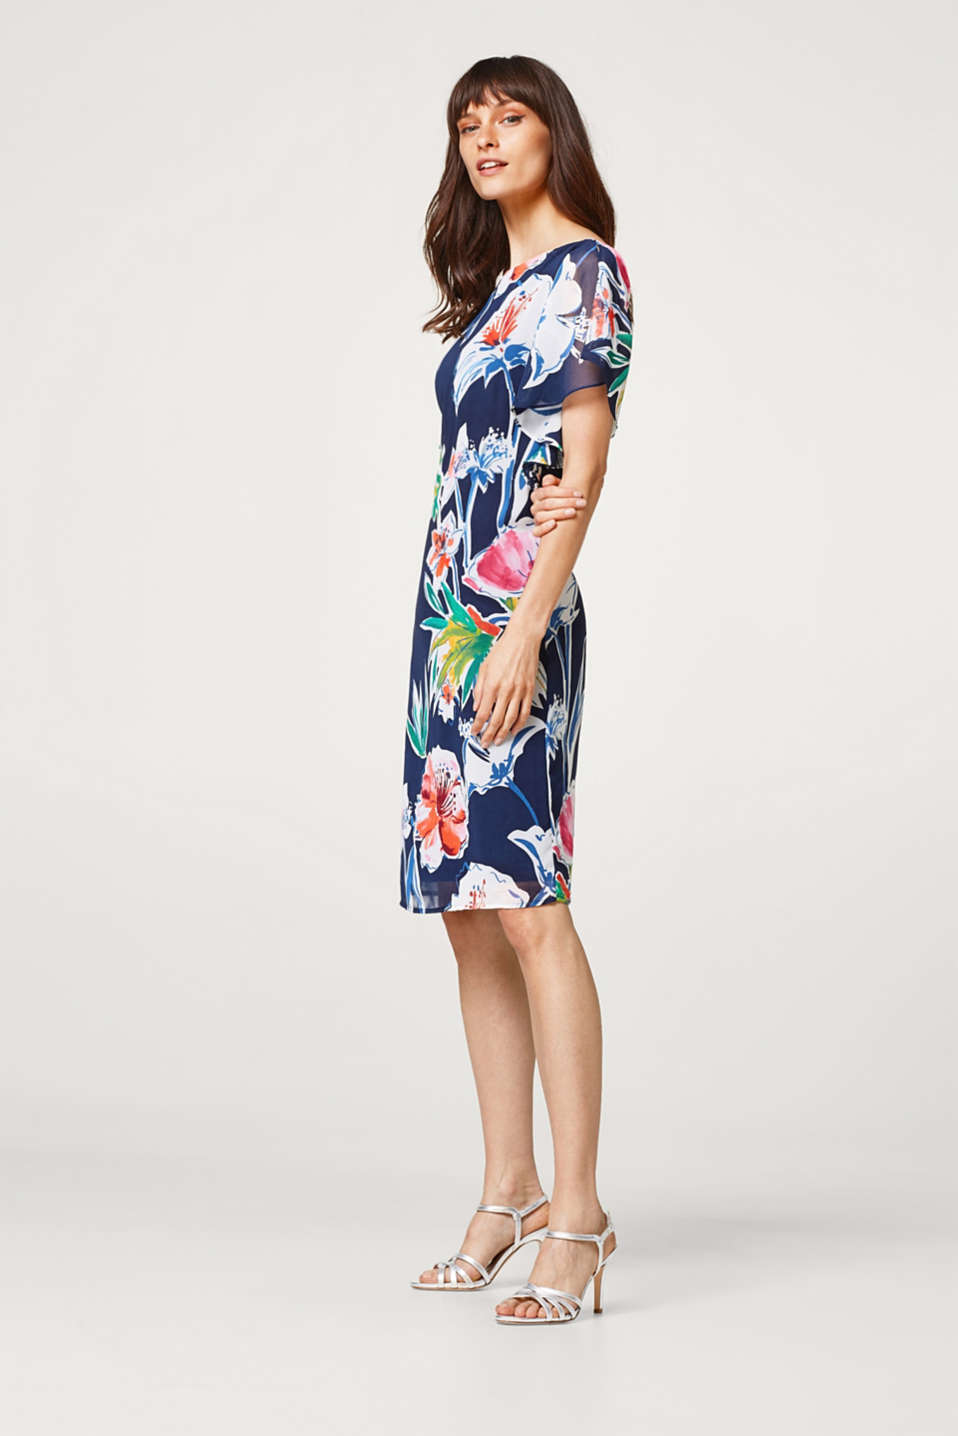 Printed chiffon dress with frilled sleeves